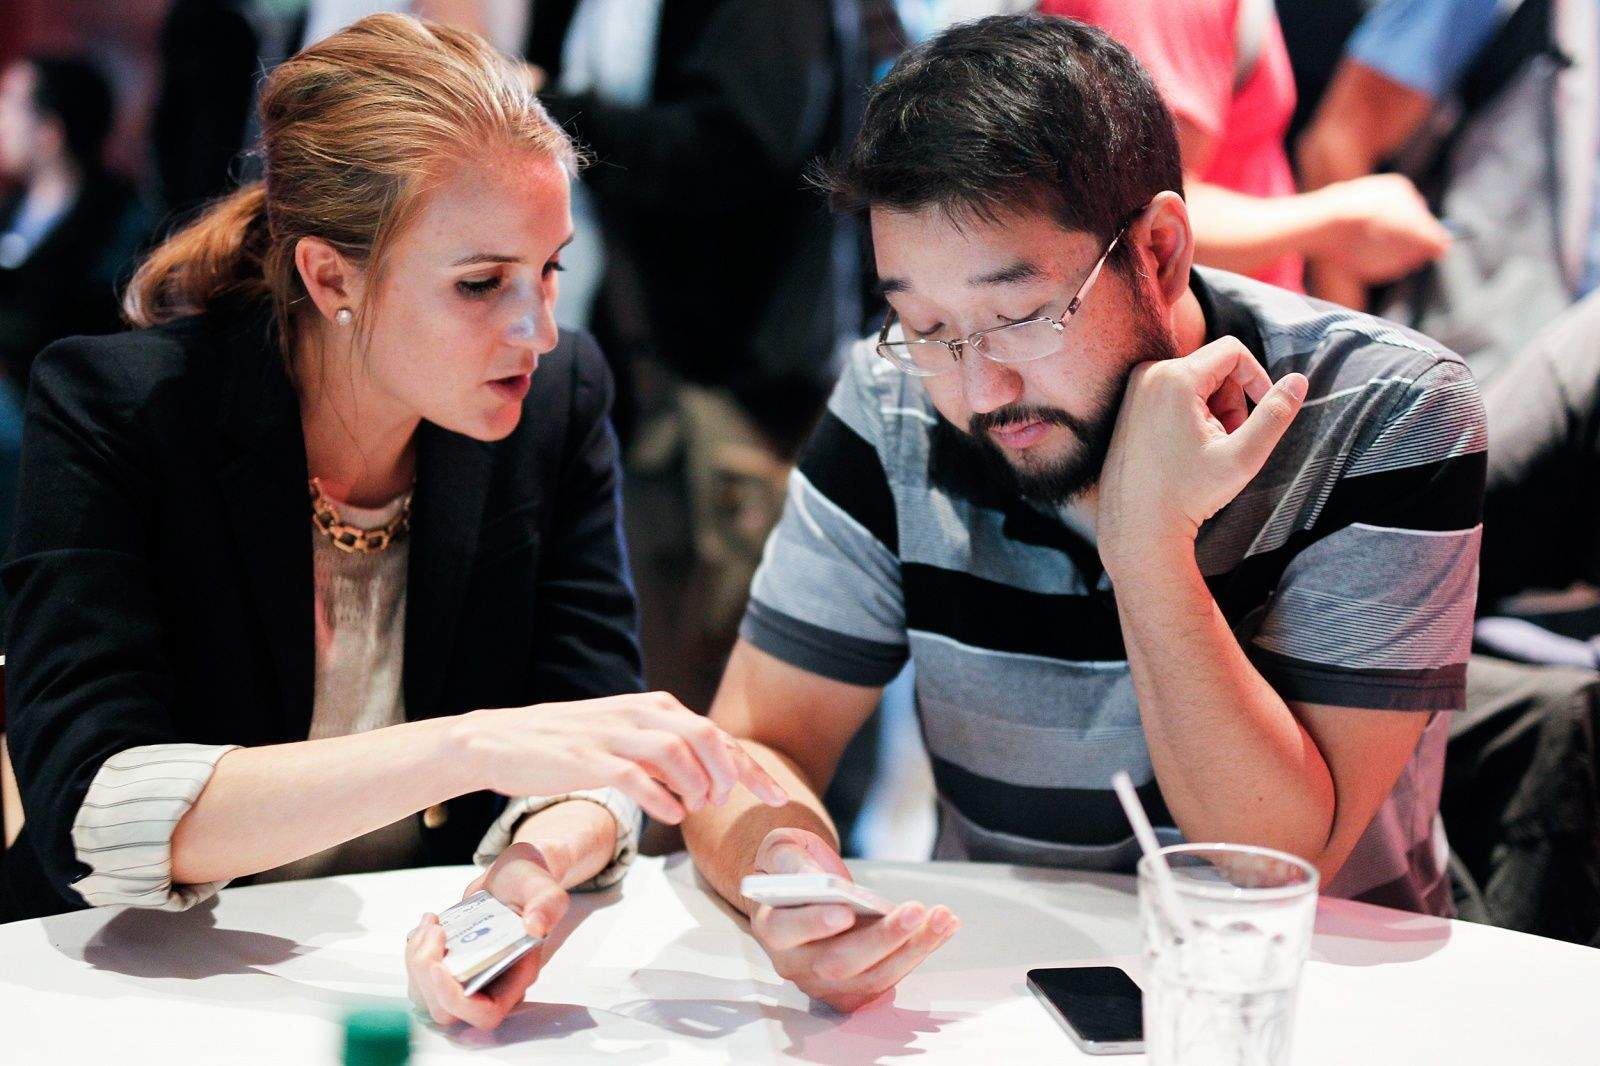 Arnold Kim, of MacRumors, listens as a developer explains her app at the AltConf Journalist Pitch Lab in San Francisco, CA, June 3, 2014. Photo: Jim Merithew/Cult of Mac